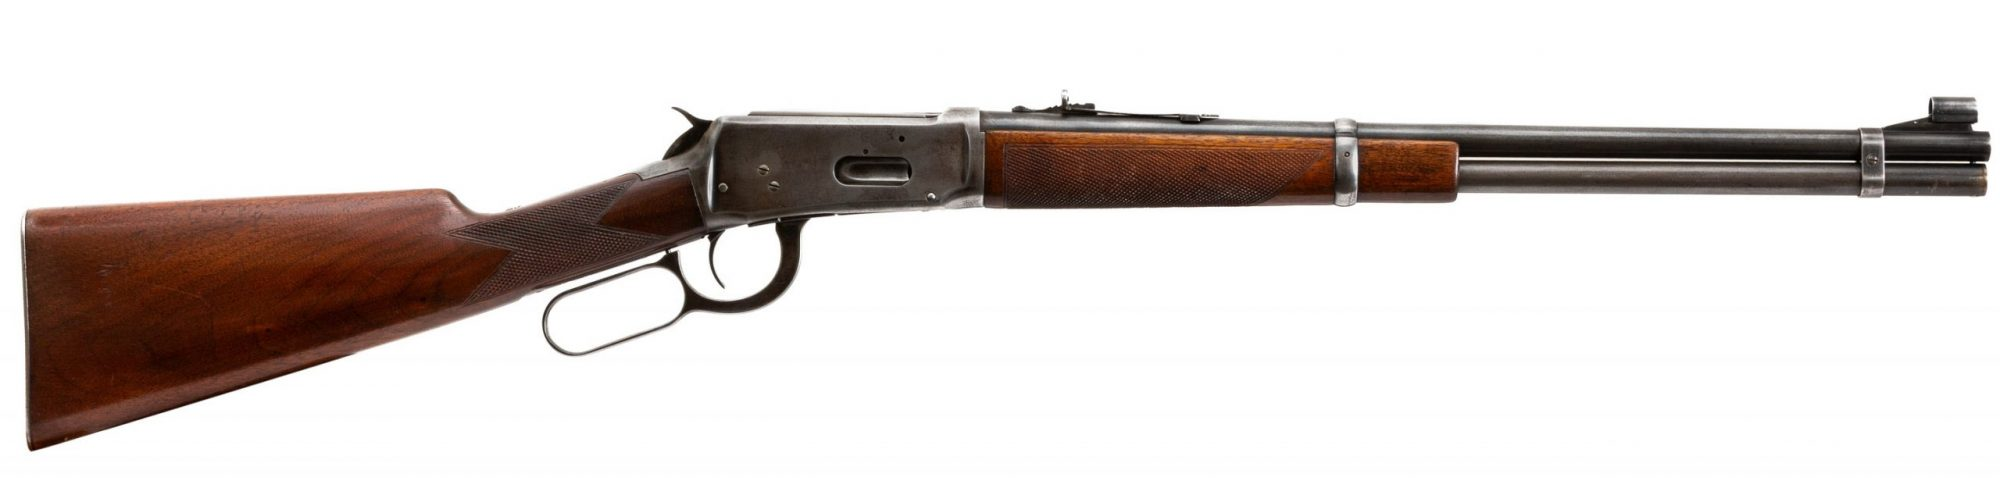 Photo of a pre-owned Winchester Model 94 from 1949, for sale by Turnbull Restoration of Bloomfield, NY